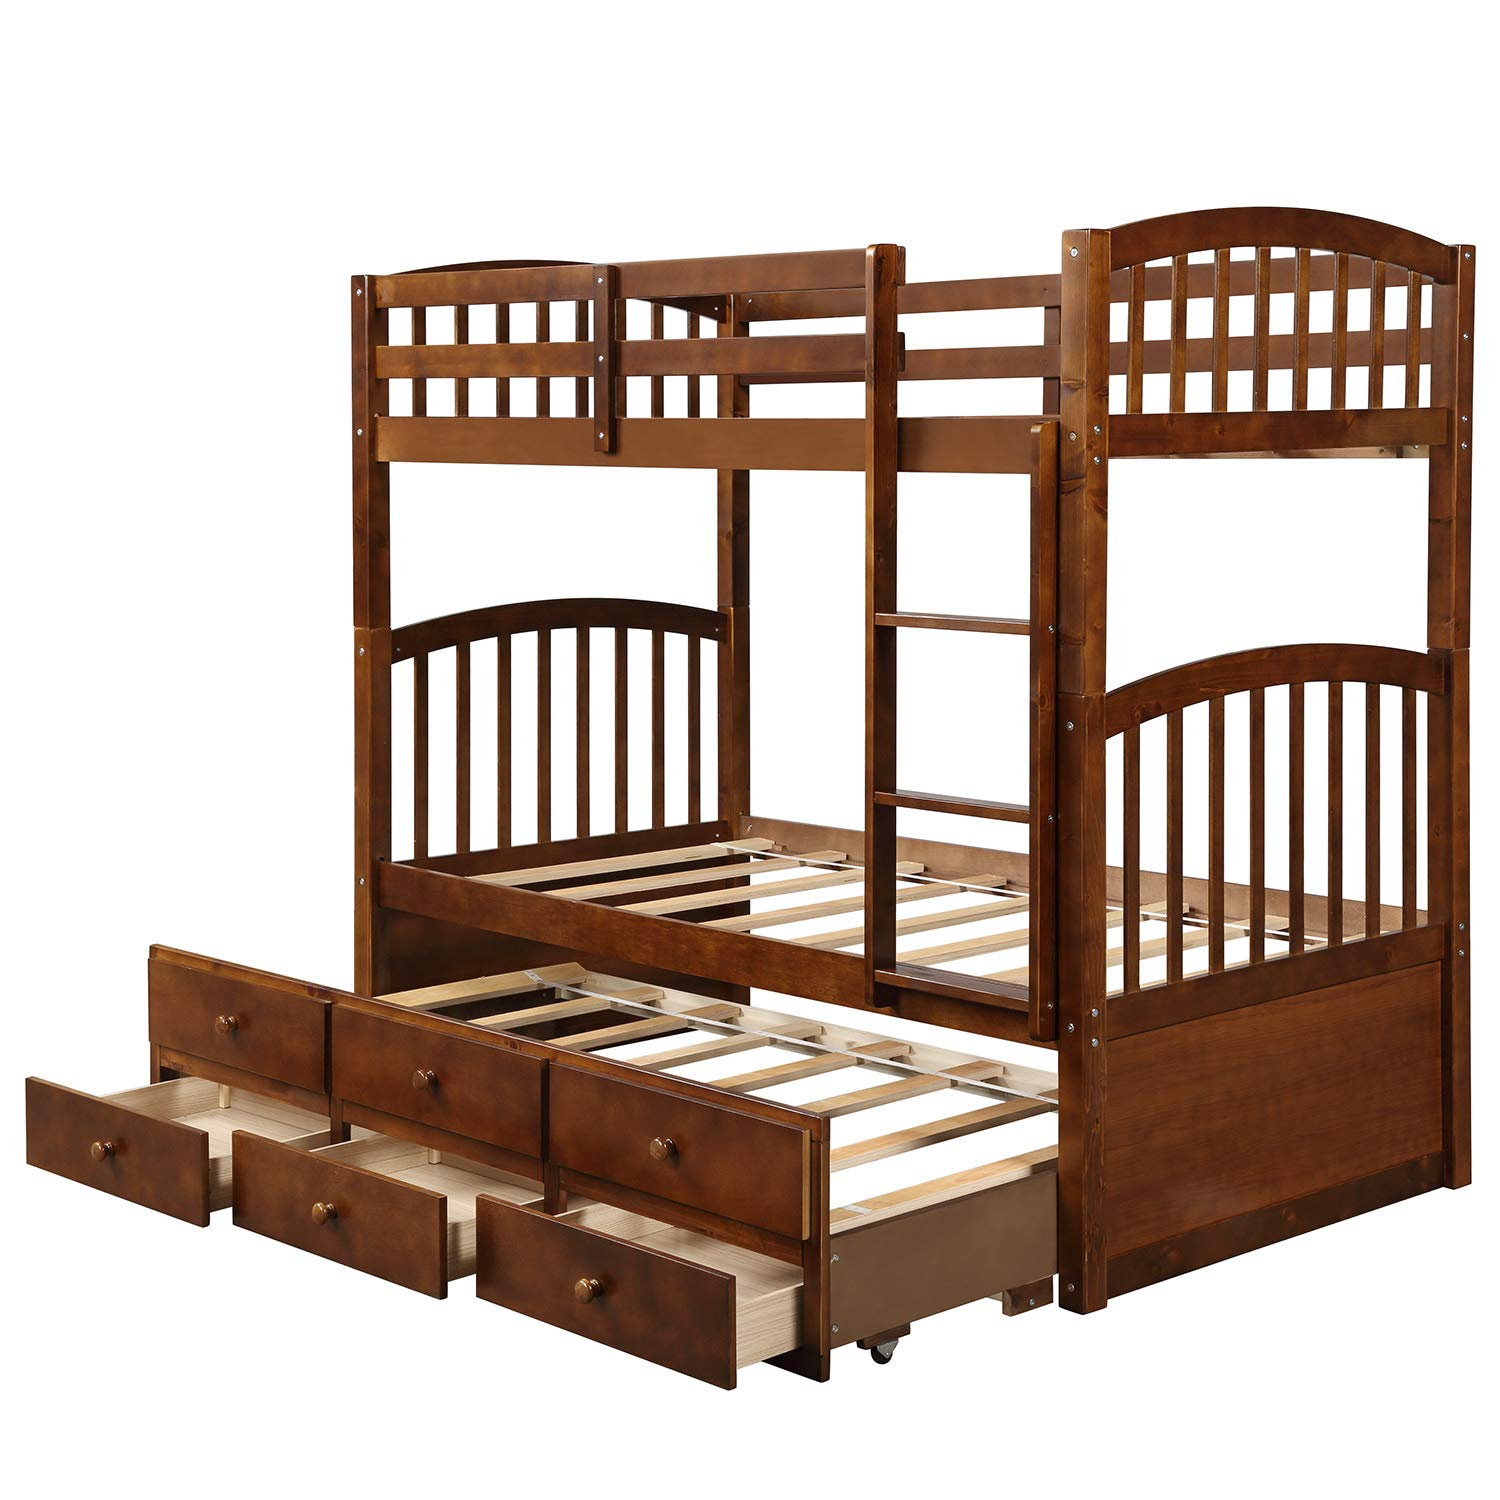 Bunk Ladder, Safety Rail, Twin Trundle Bed with 3 Drawers for Kids, Teens Bedroom, Guest Room Furniture Walnut